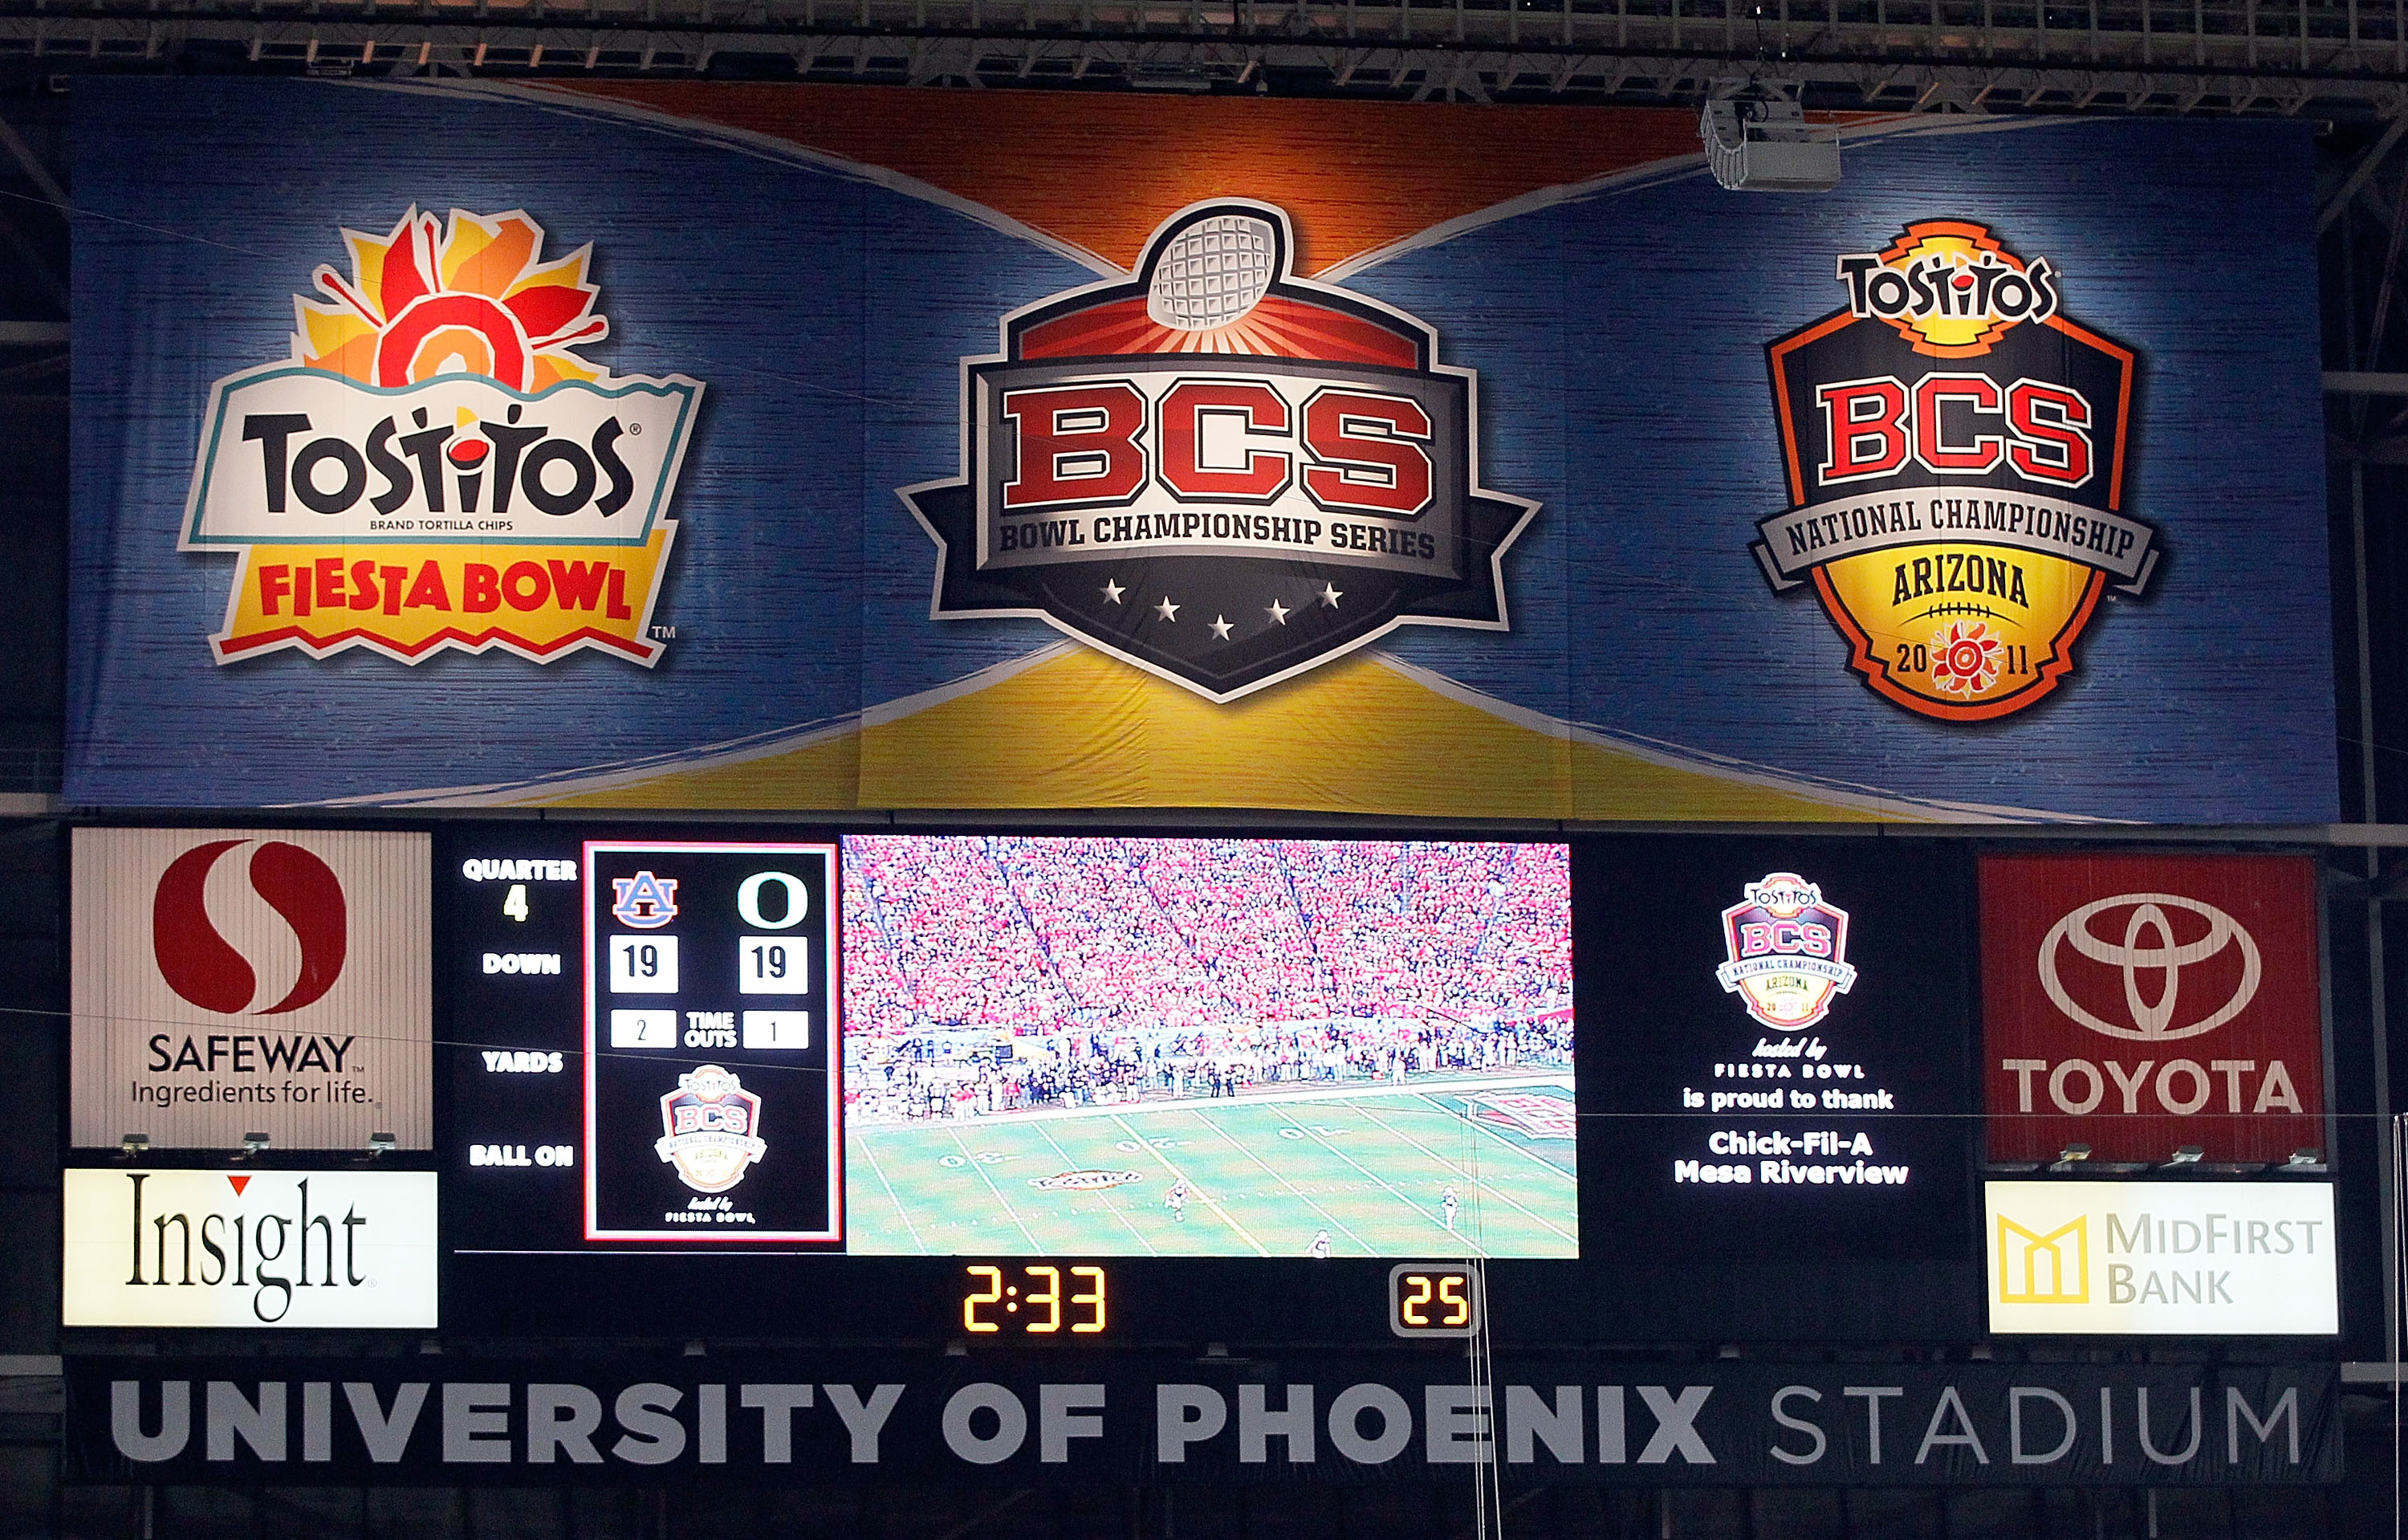 GLENDALE, AZ - JANUARY 10:  A general view of the scoreboard during the Tostitos BCS National Championship Game between the Oregon Ducks and the Auburn Tigers at University of Phoenix Stadium on January 10, 2011 in Glendale, Arizona.  (Photo by Kevin C. C